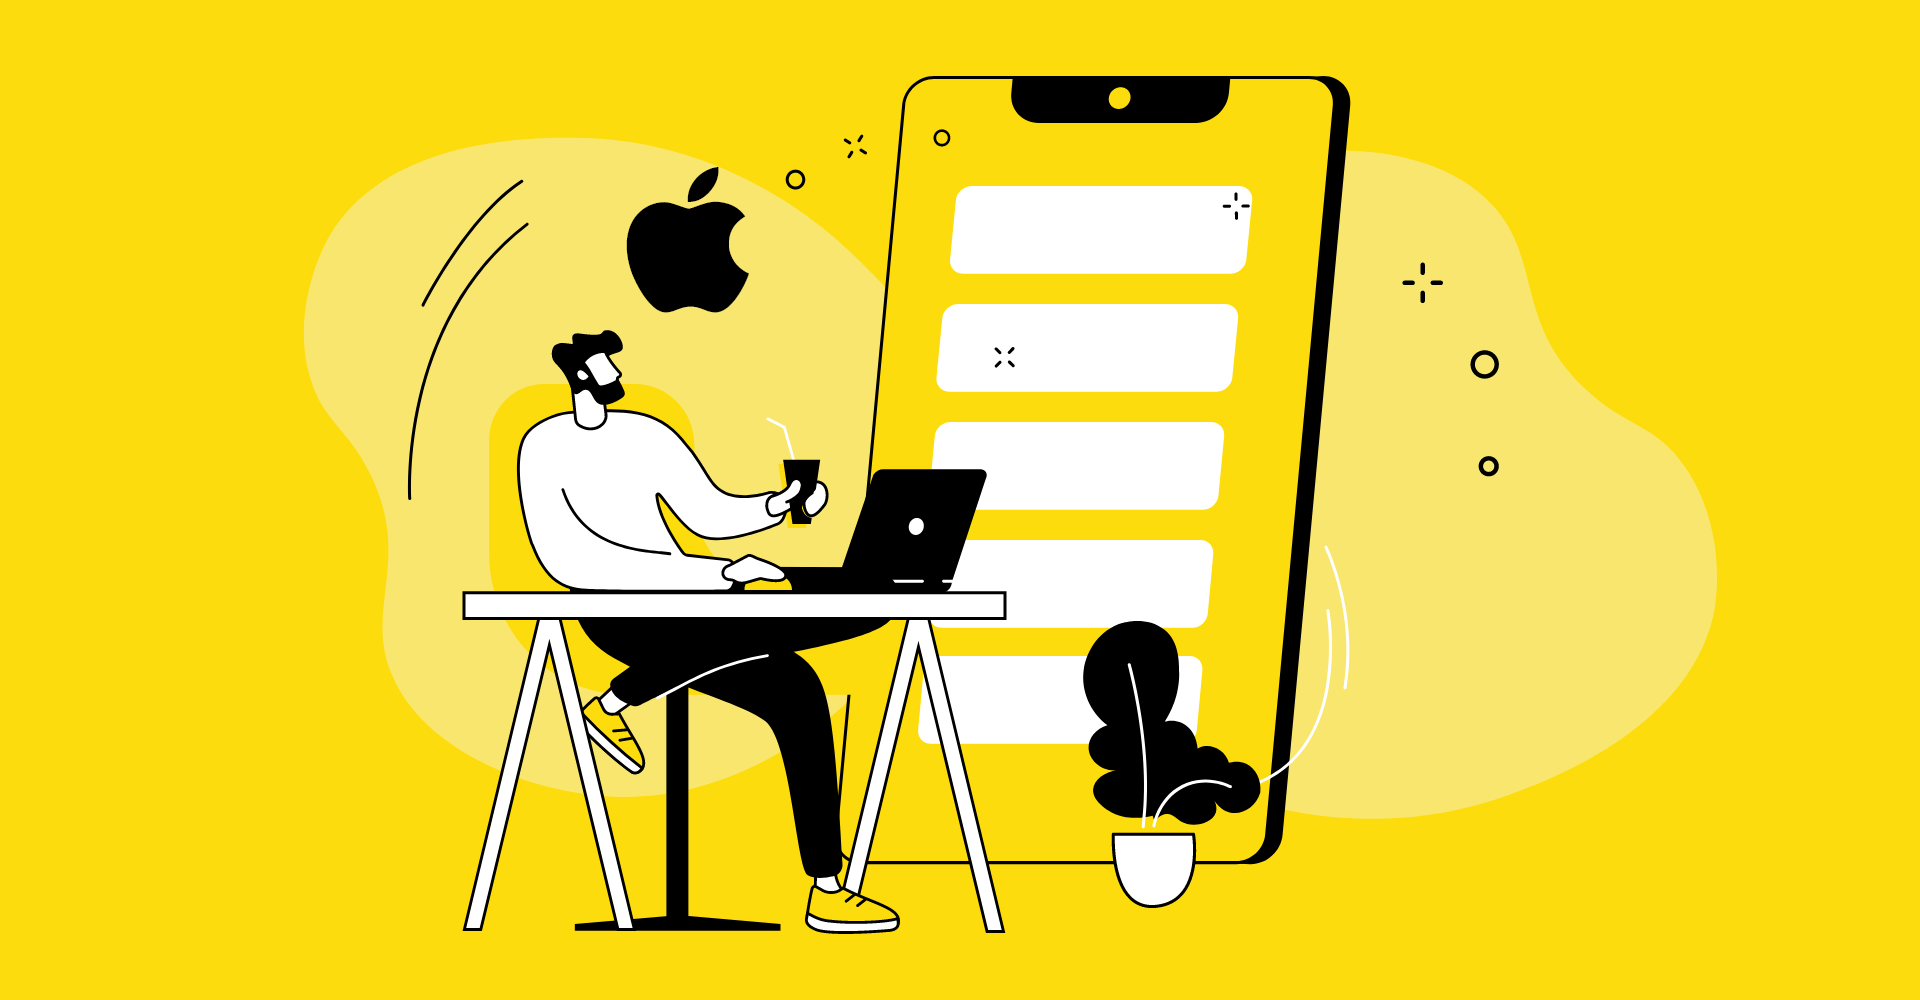 blog cover graphic showing man sitting with laptop and Apple logo in the background